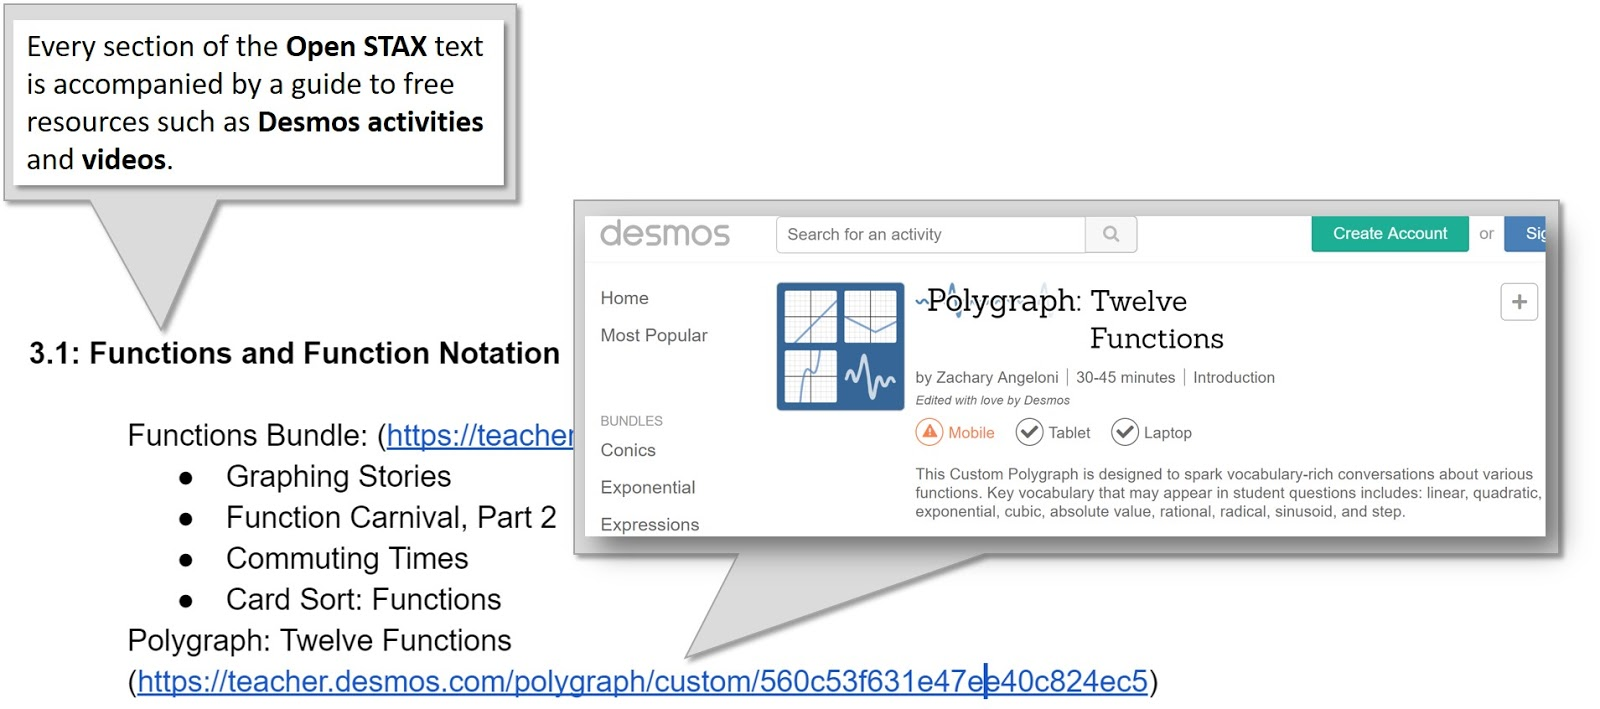 Screenshot with expanded link to Desmos Polygraph Twelve Functions activity